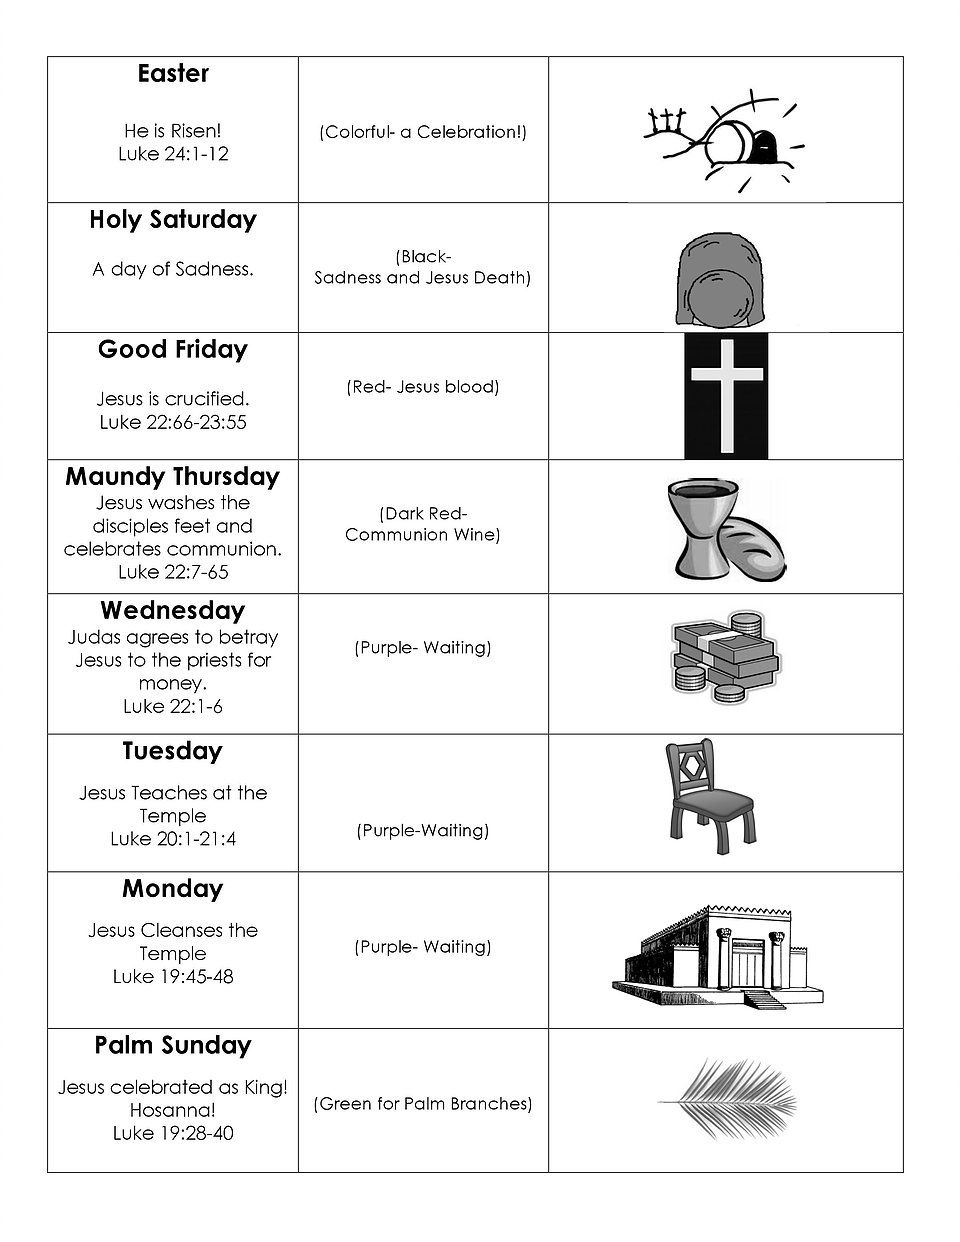 Free Printable Charts For Holy Week Includes Scripture References Symbols Colors And Titles Holy Week For Kids Easter Sunday School Holy Week Activities